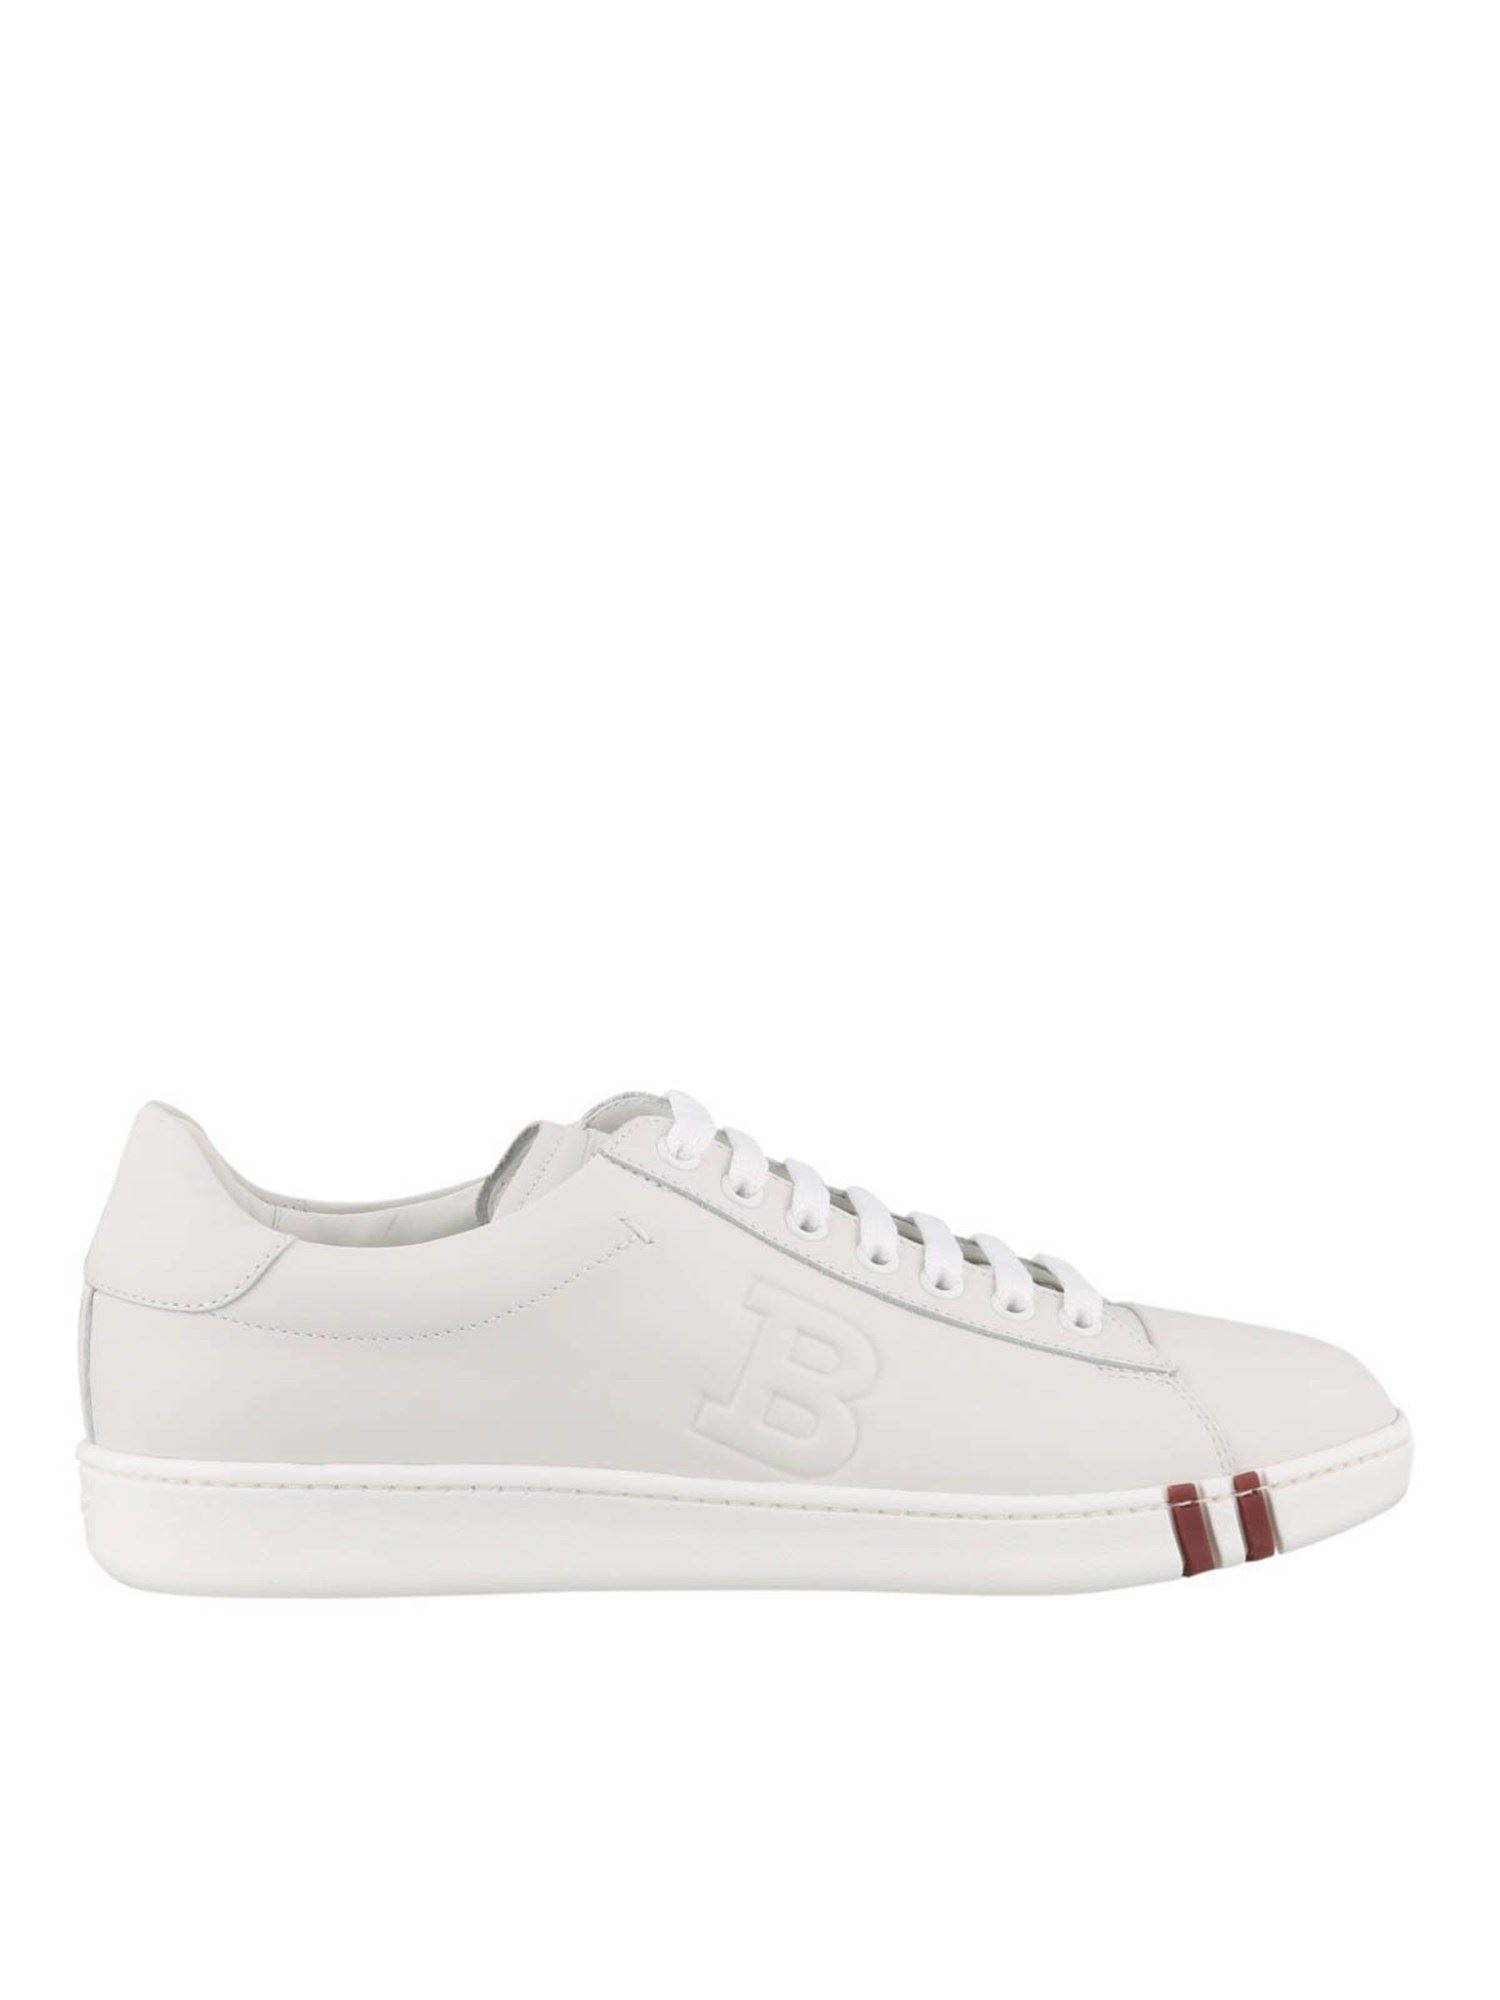 Bally LEATHER SNEAKERS IN WHITE